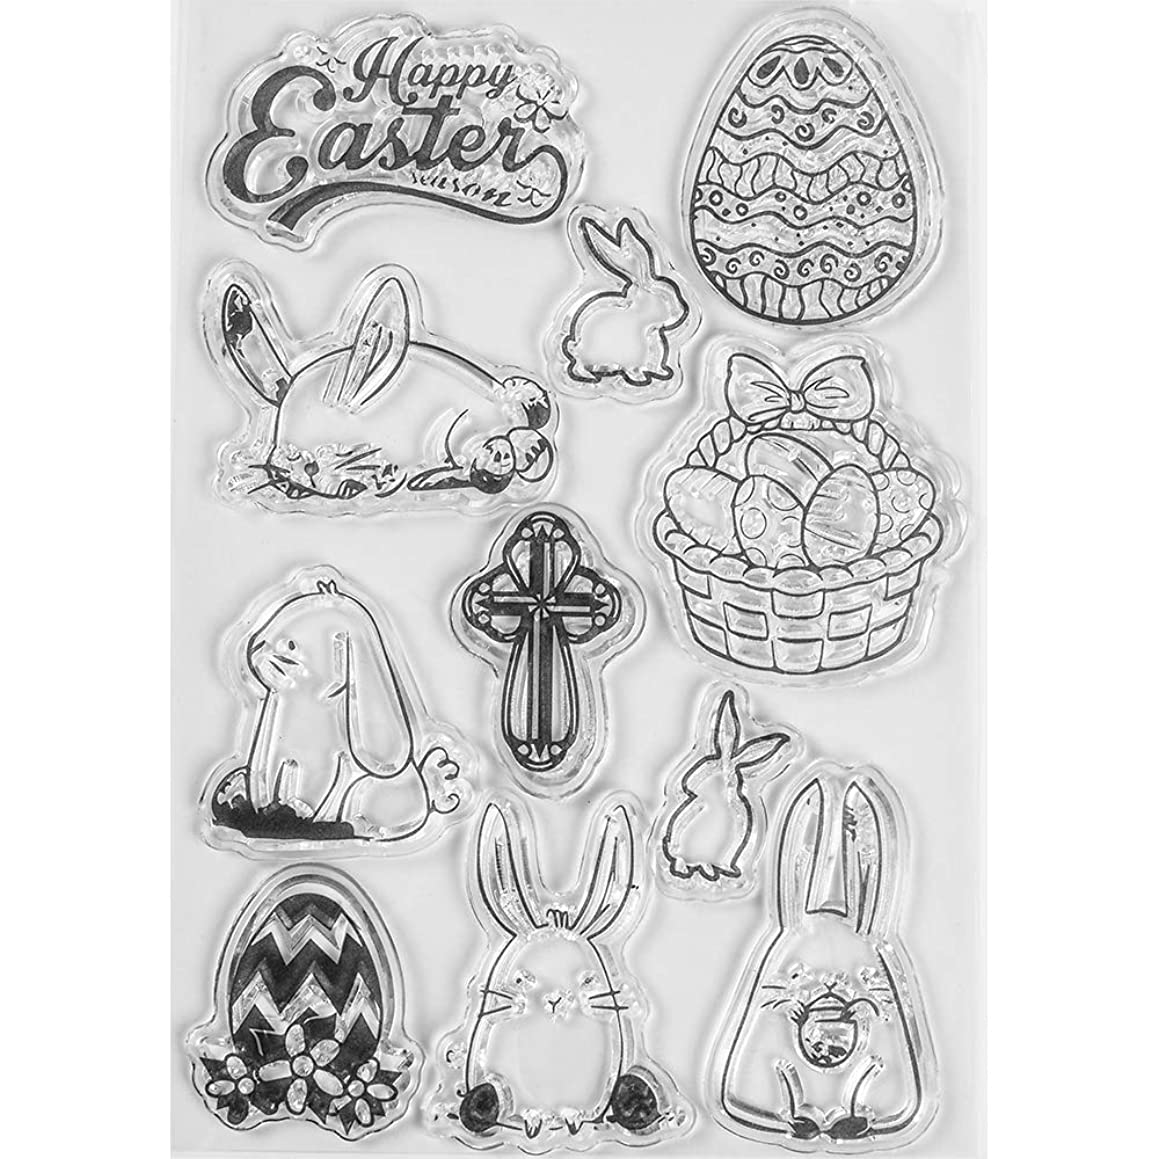 MaGuo Easter Clear Stamps Bunny Basket Egges Cross for Card Making Decoration and DIY Scrapbooking